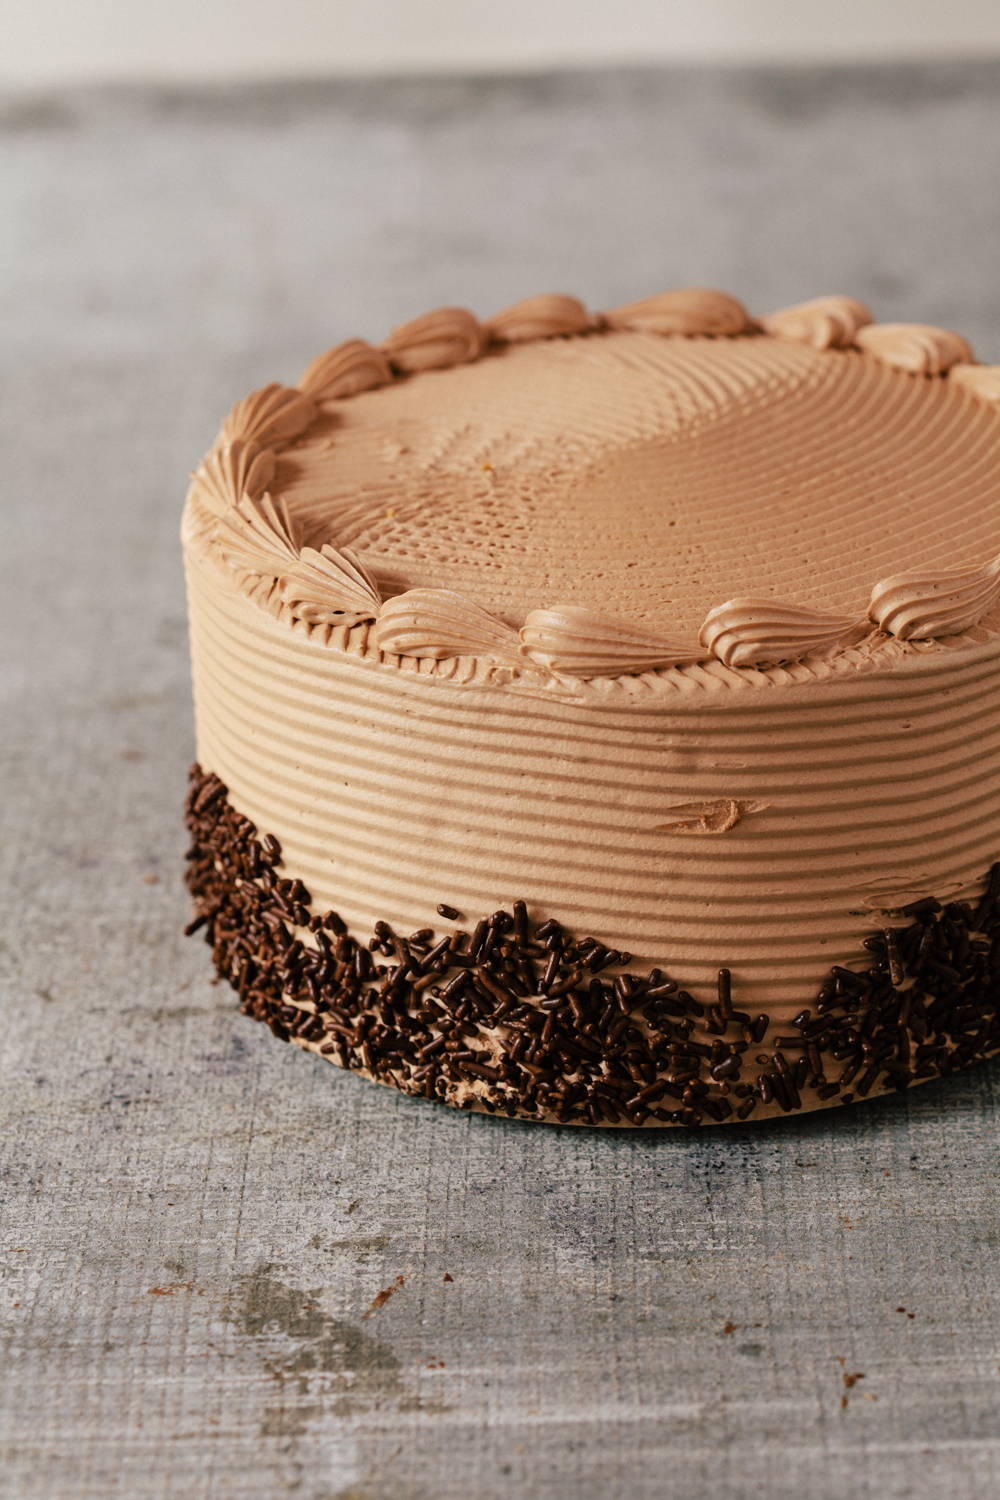 "Devil's Food Cake: Three layers of moist dense devil's food cake with chocolate buttercream. Available daily in 7"" round."